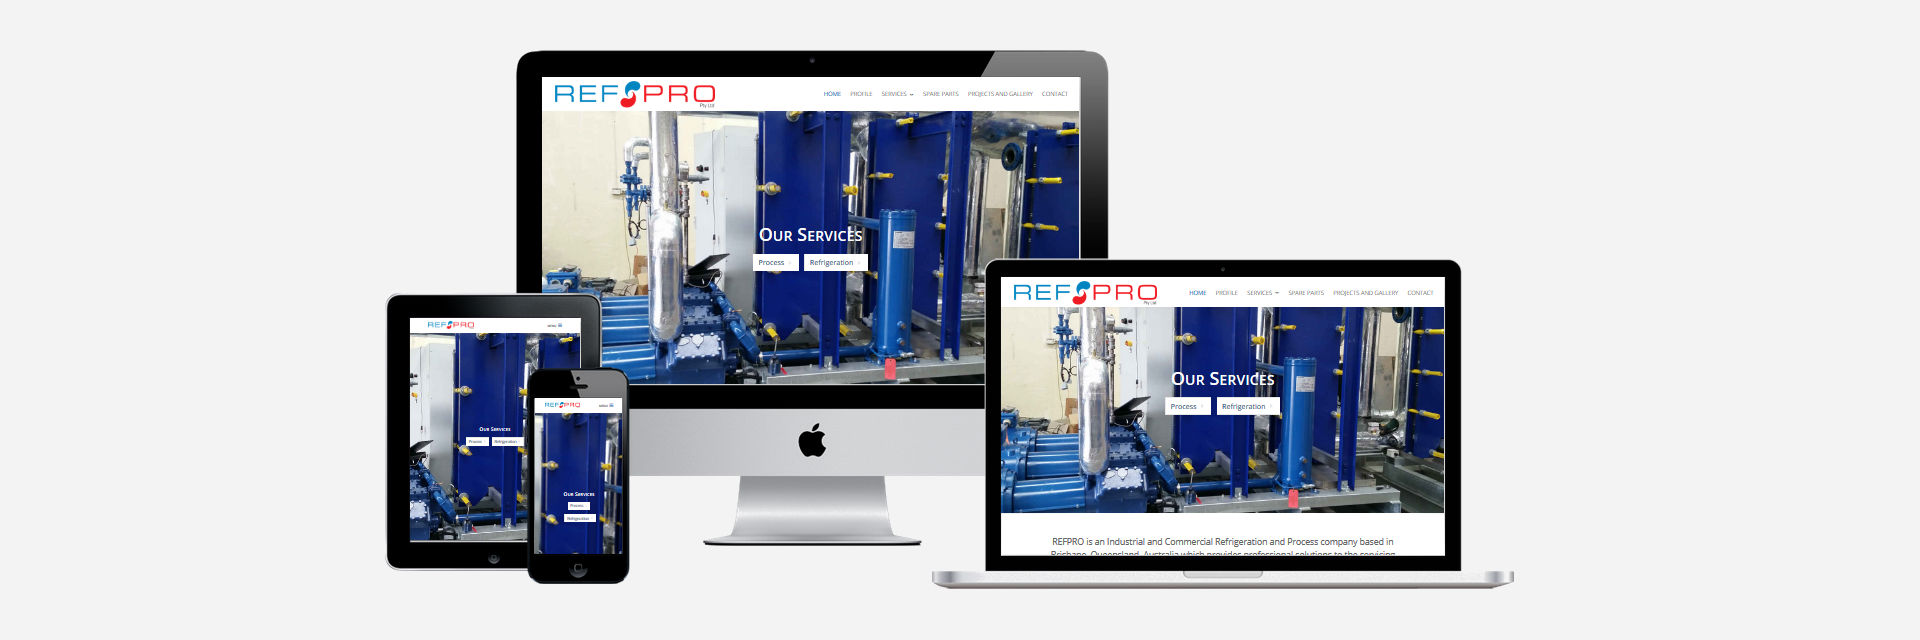 RefPro Pty Ltd - New Website Design